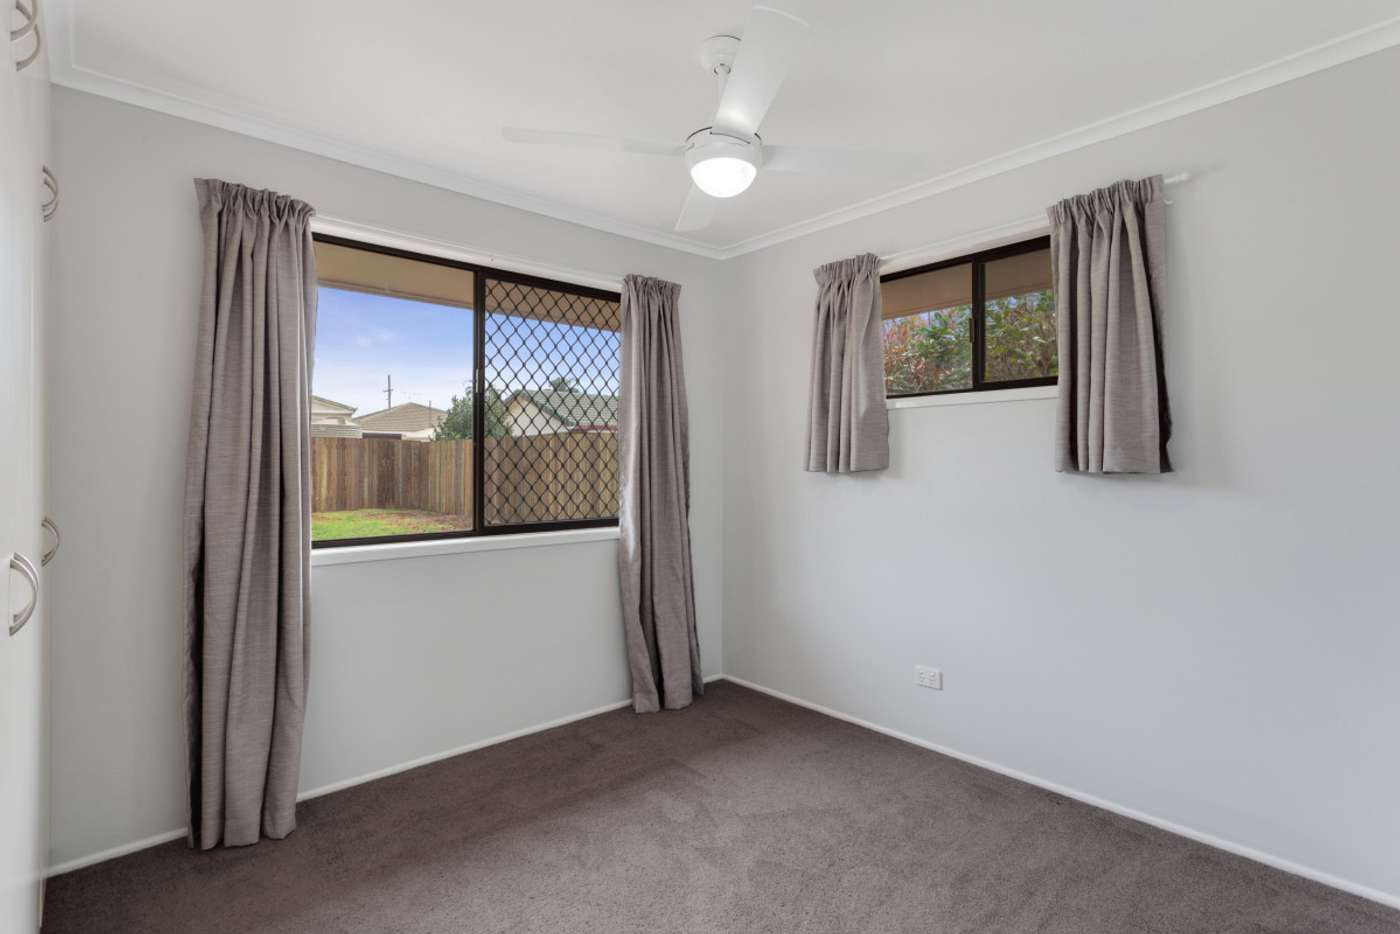 Fifth view of Homely house listing, 18 Panda Street, Harristown QLD 4350